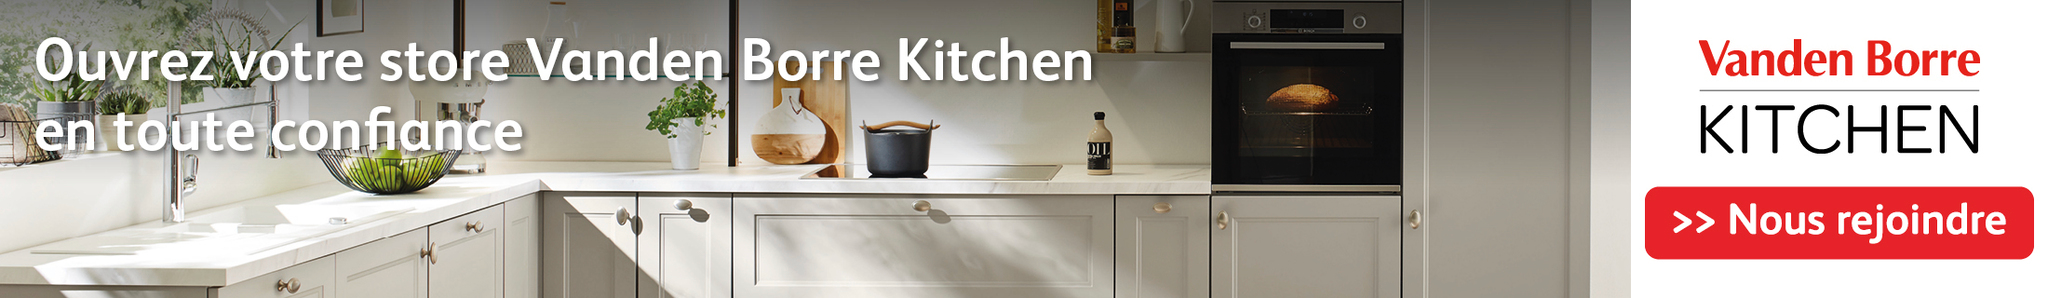 Vanden Borre Kitchen FR